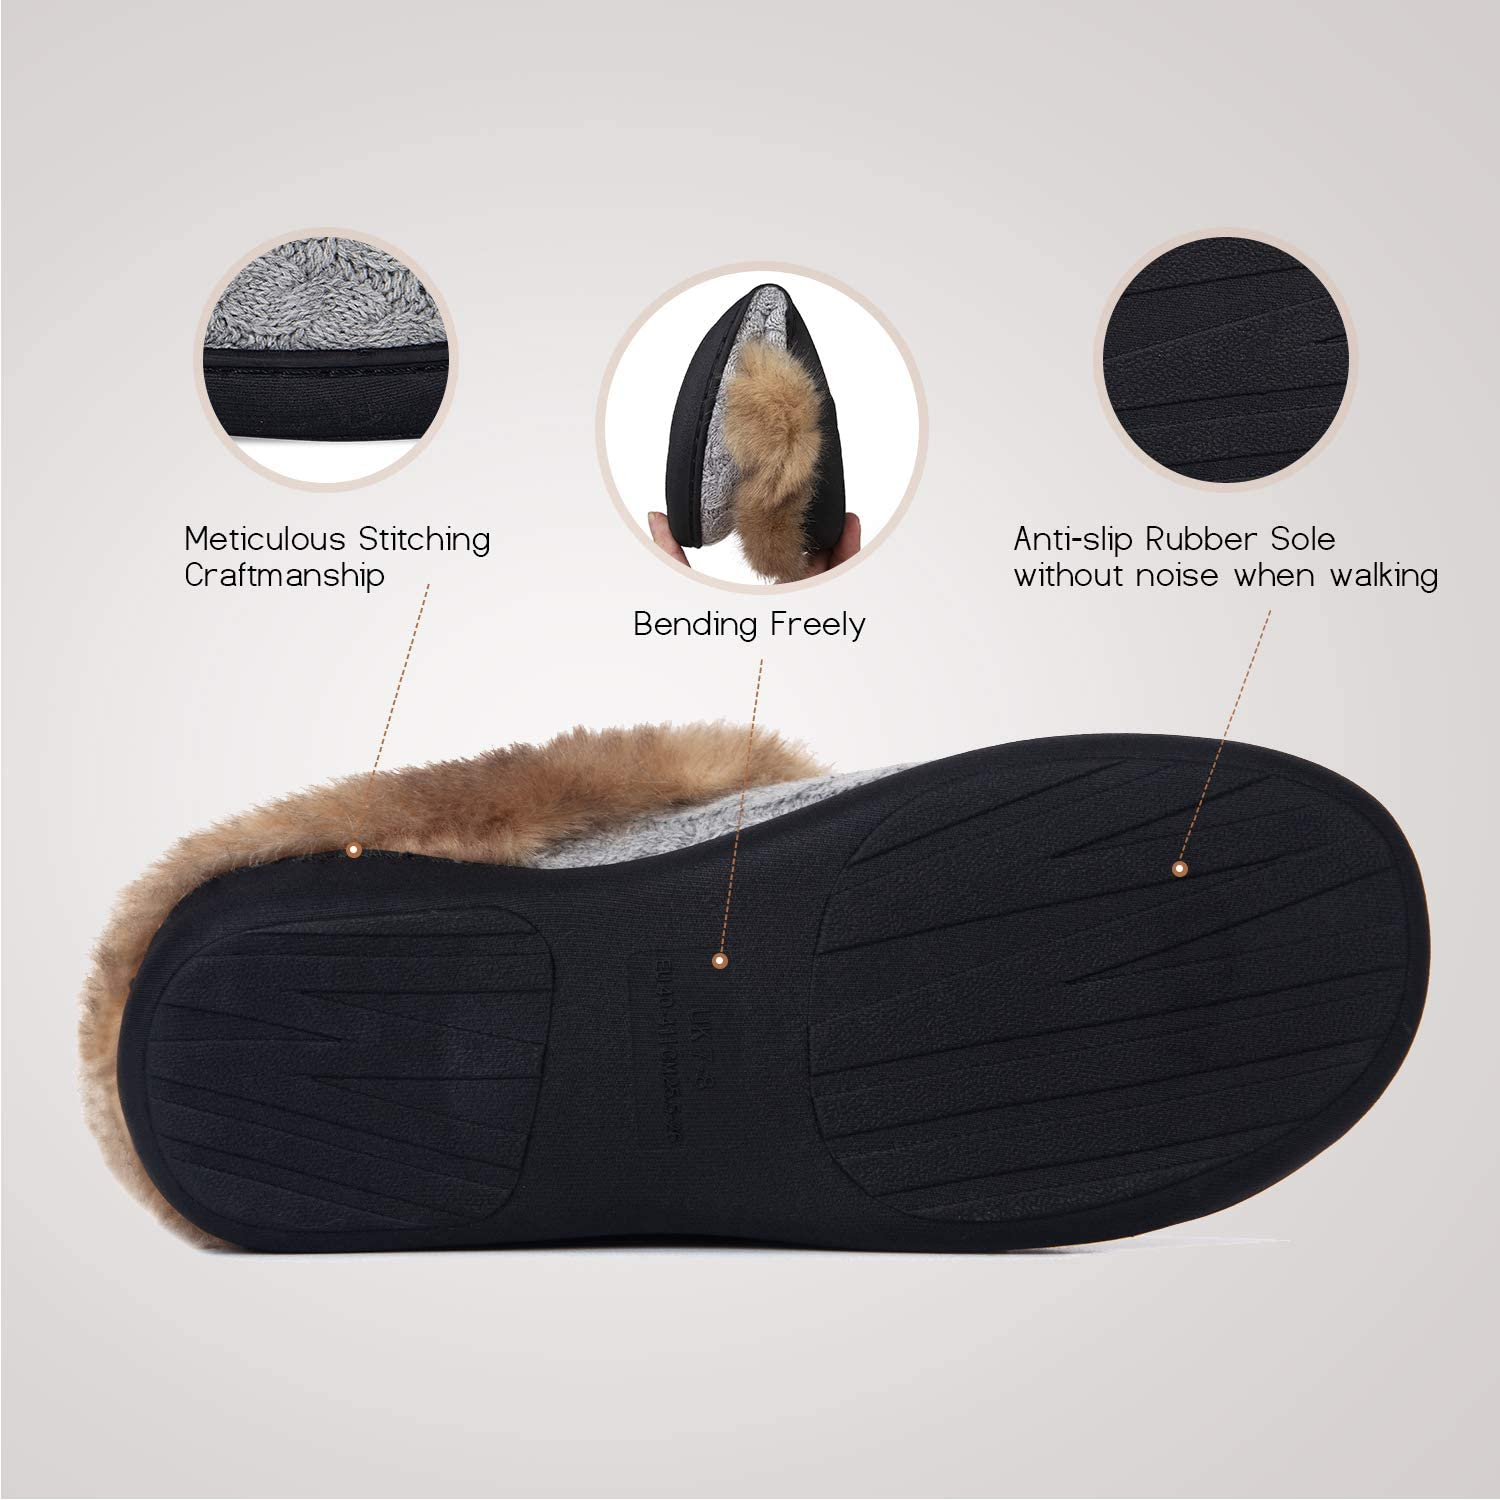 Ladies Slipper House Memory Foam Slippers Comfort and Warm Slippers for Mens and Womens Indoor Outdoor Non-Slip Plush Slippers